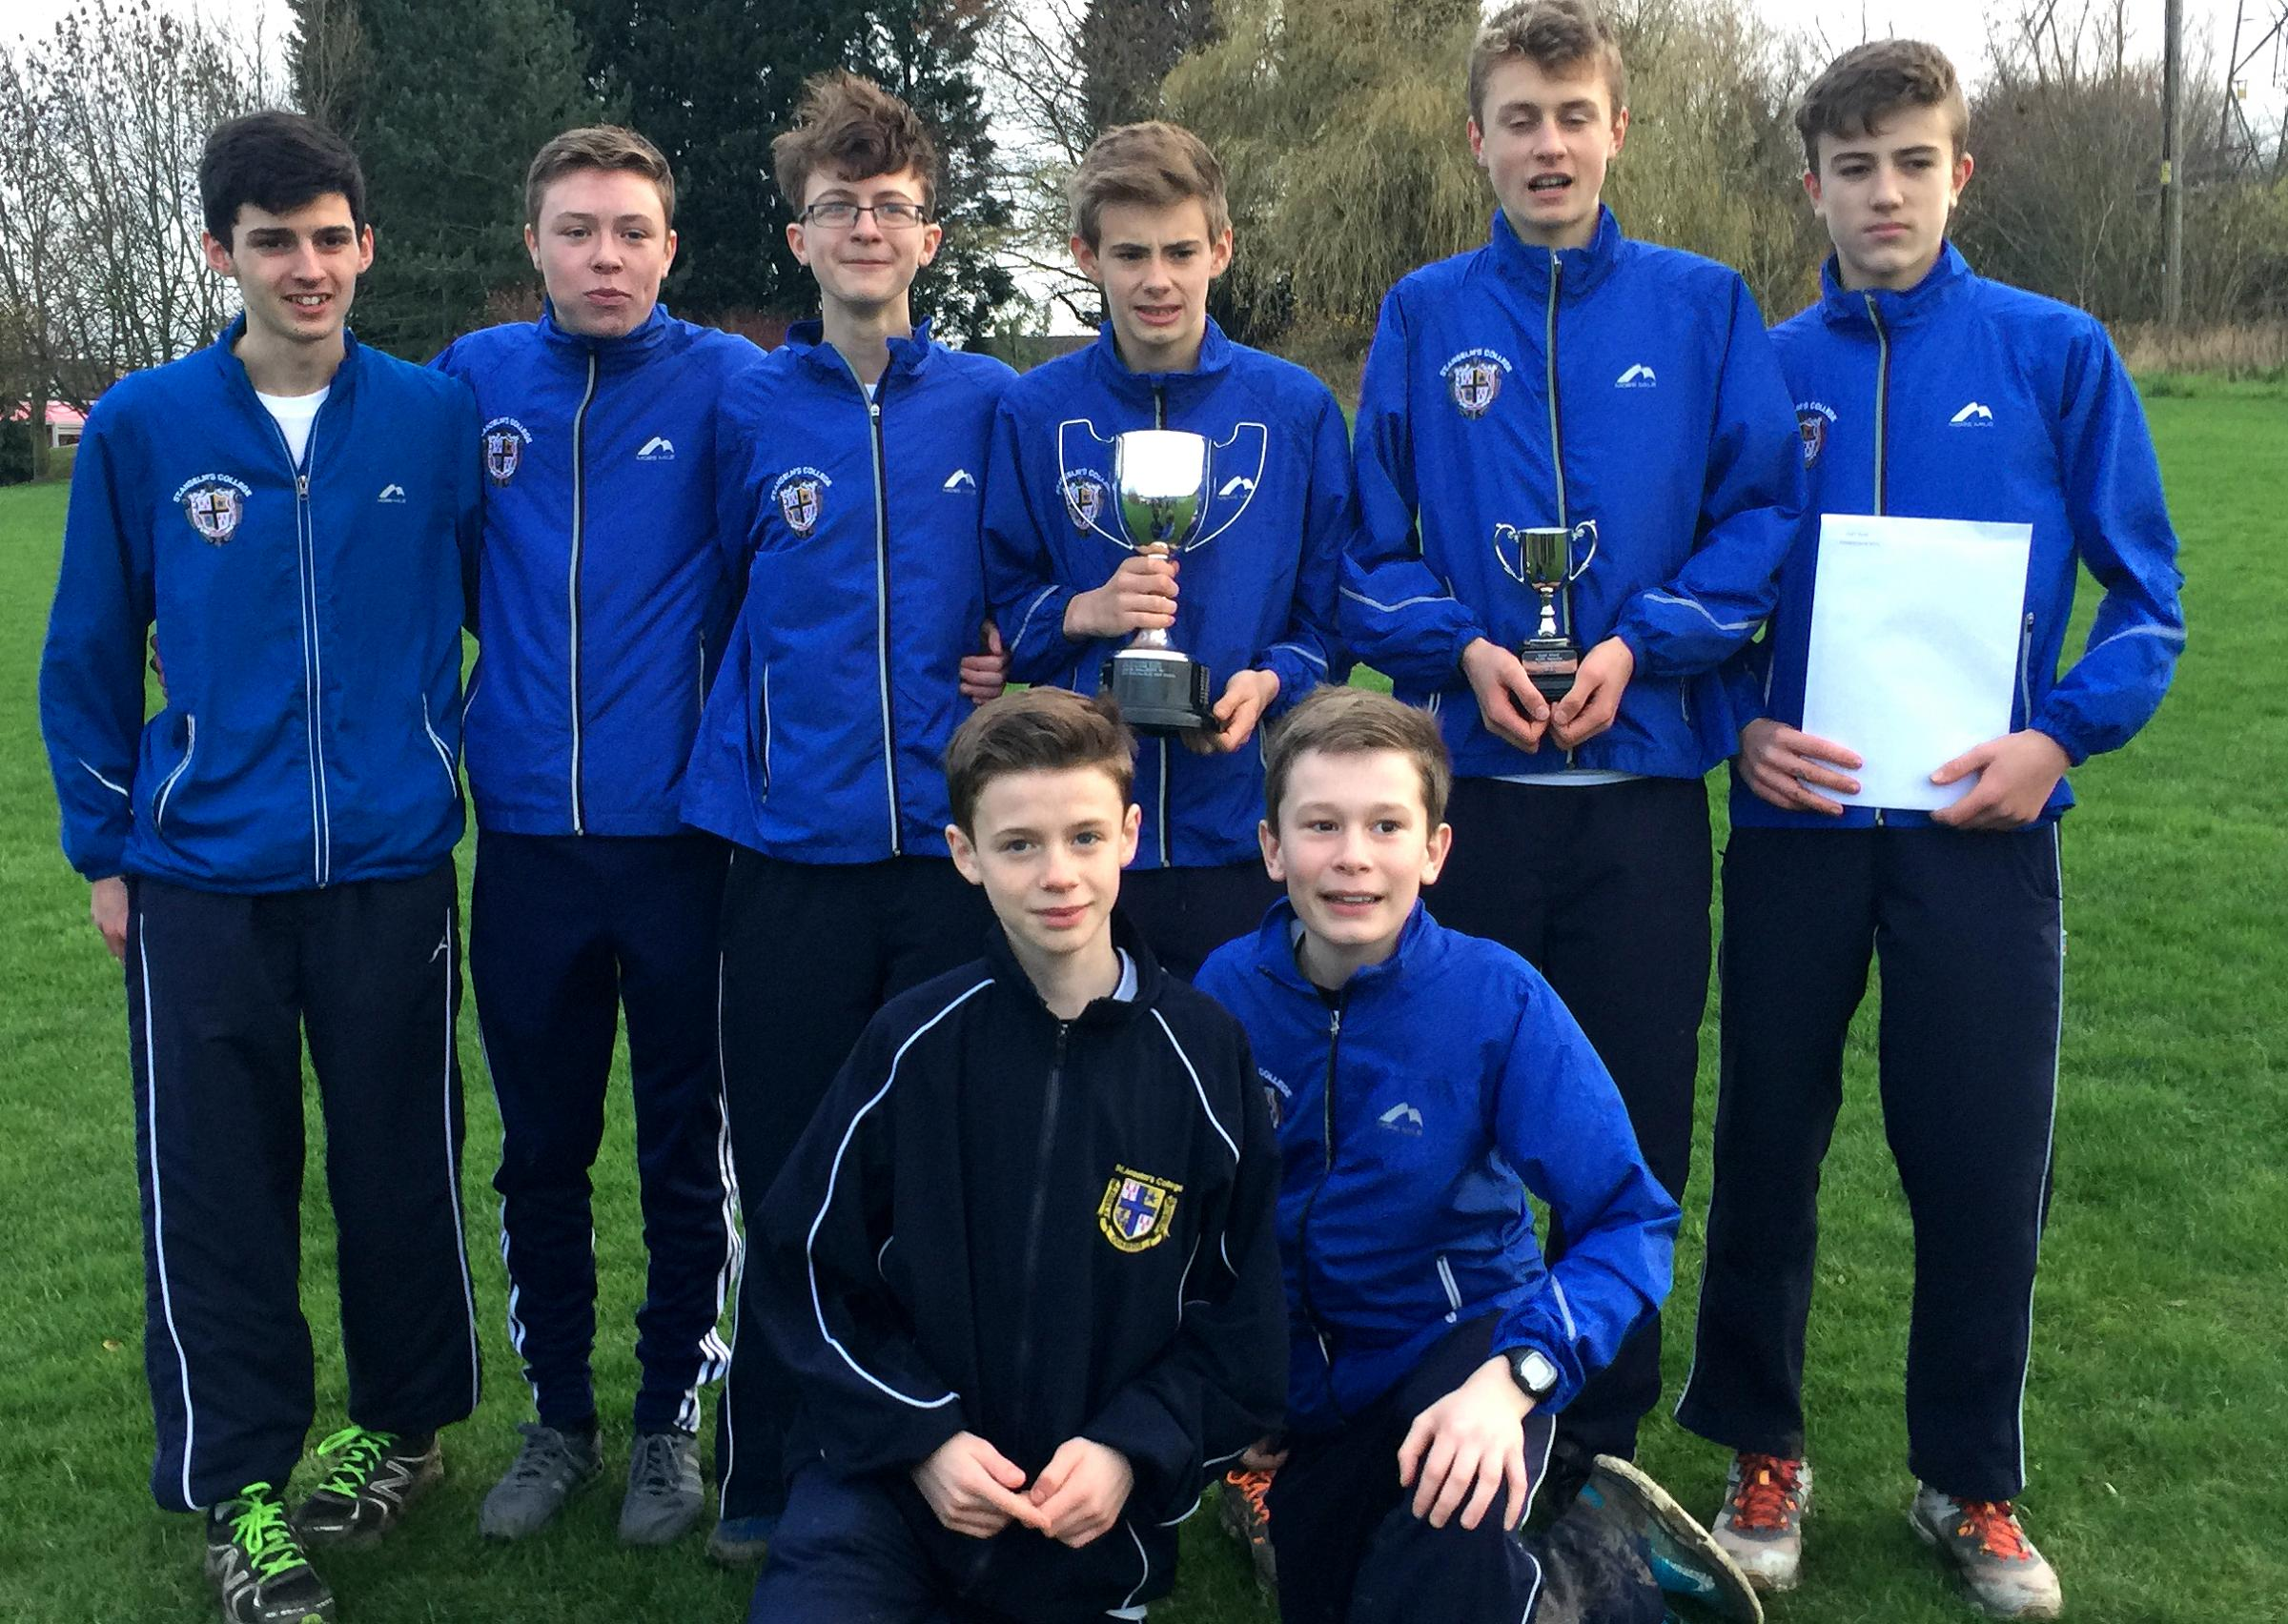 St Anselm's College Under-15 cross country team are national champions